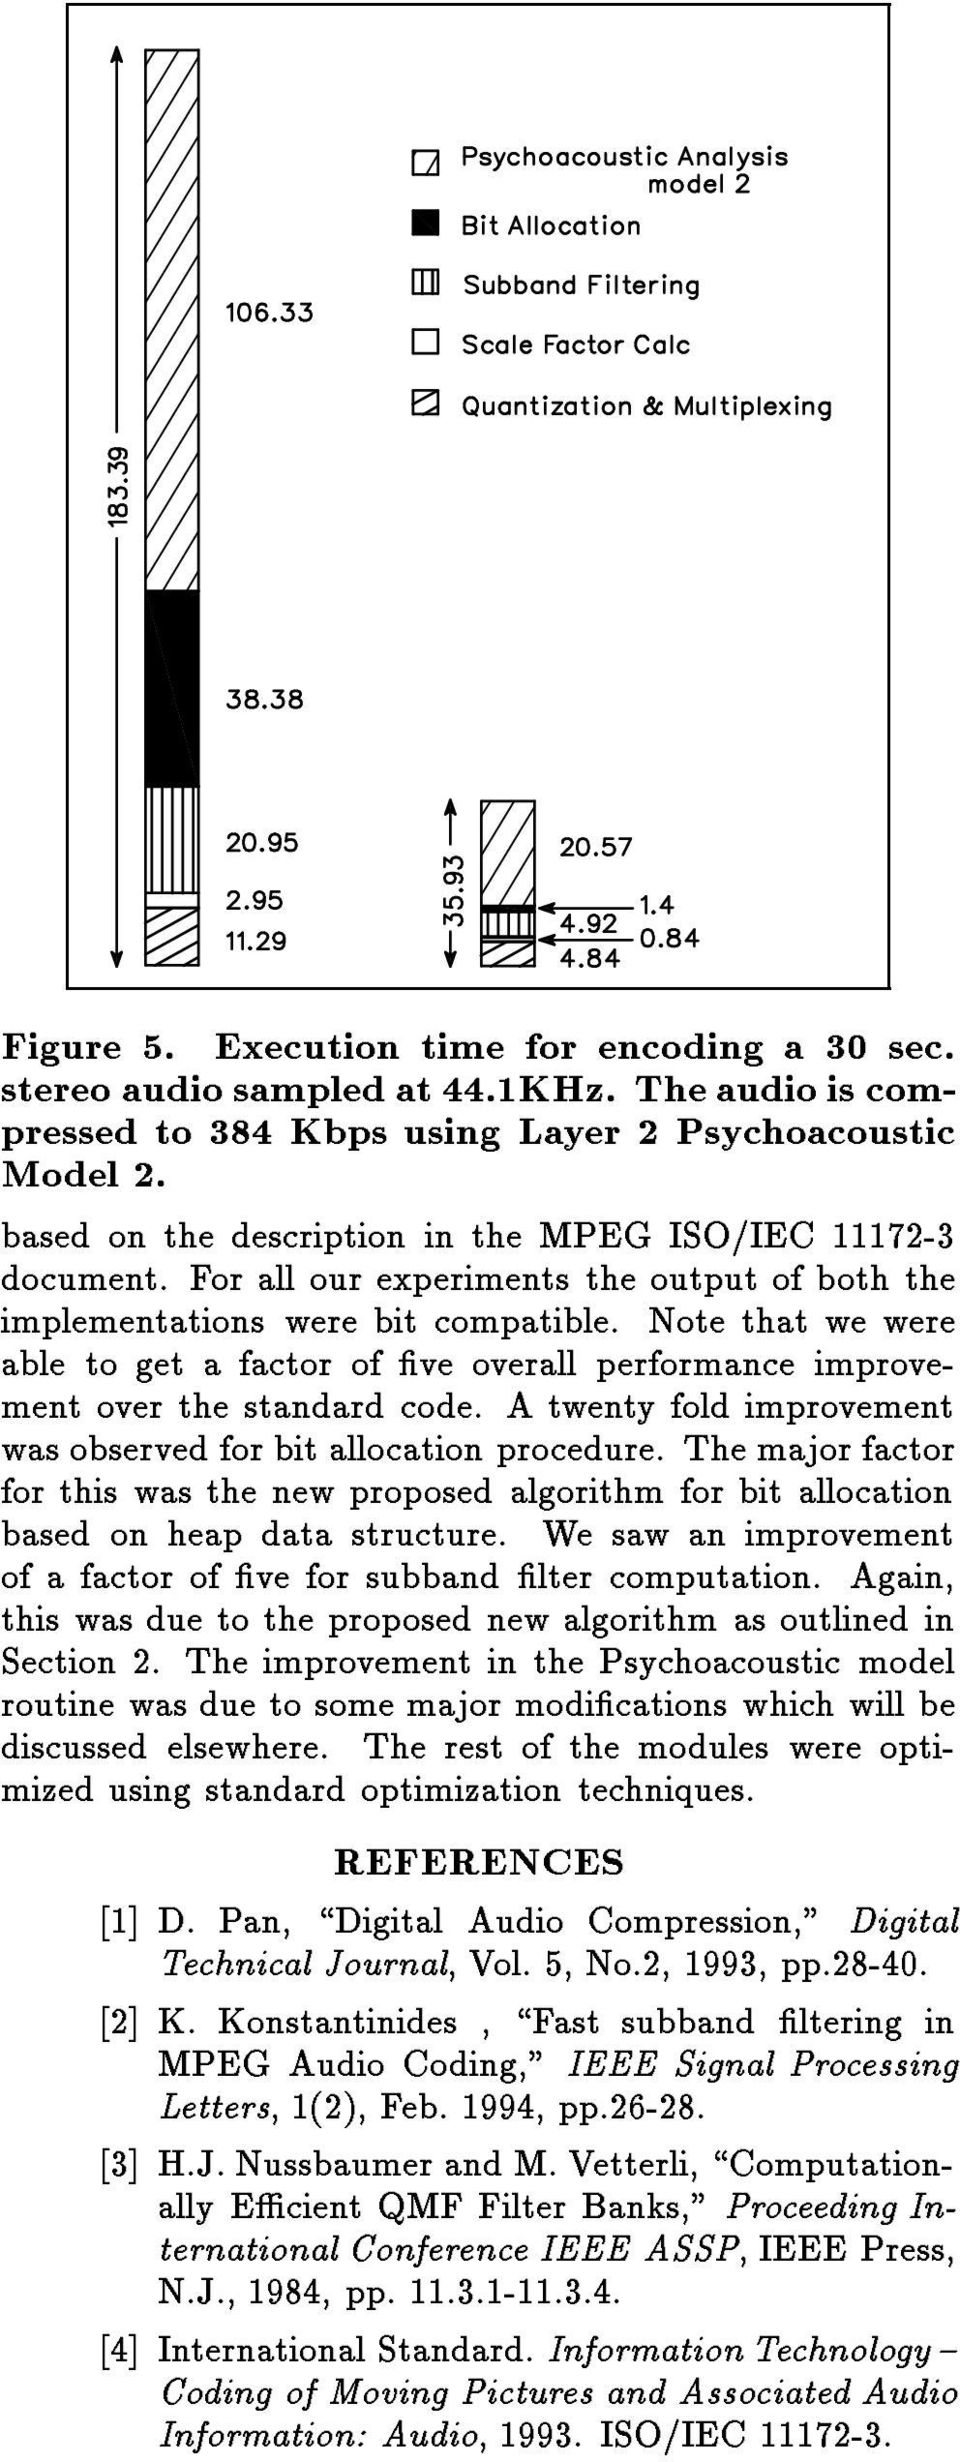 Note that we were able to get a factor of ve overall performance improvement over the standard code. A twenty fold improvement was observed for bit allocation procedure.